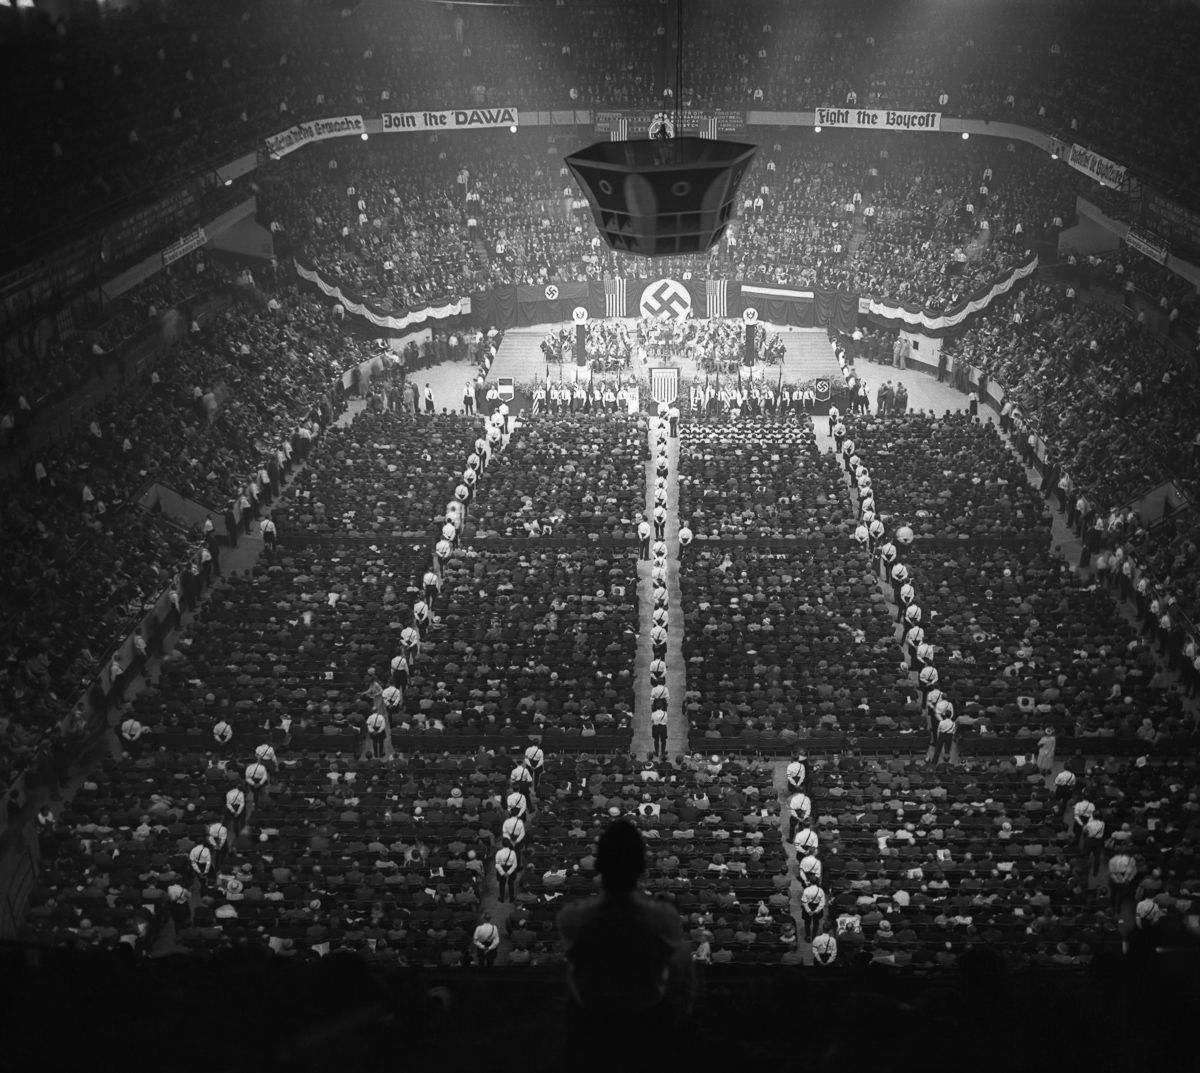 May 17, 1934. Mass meeting of members of the Friends of New Germany.